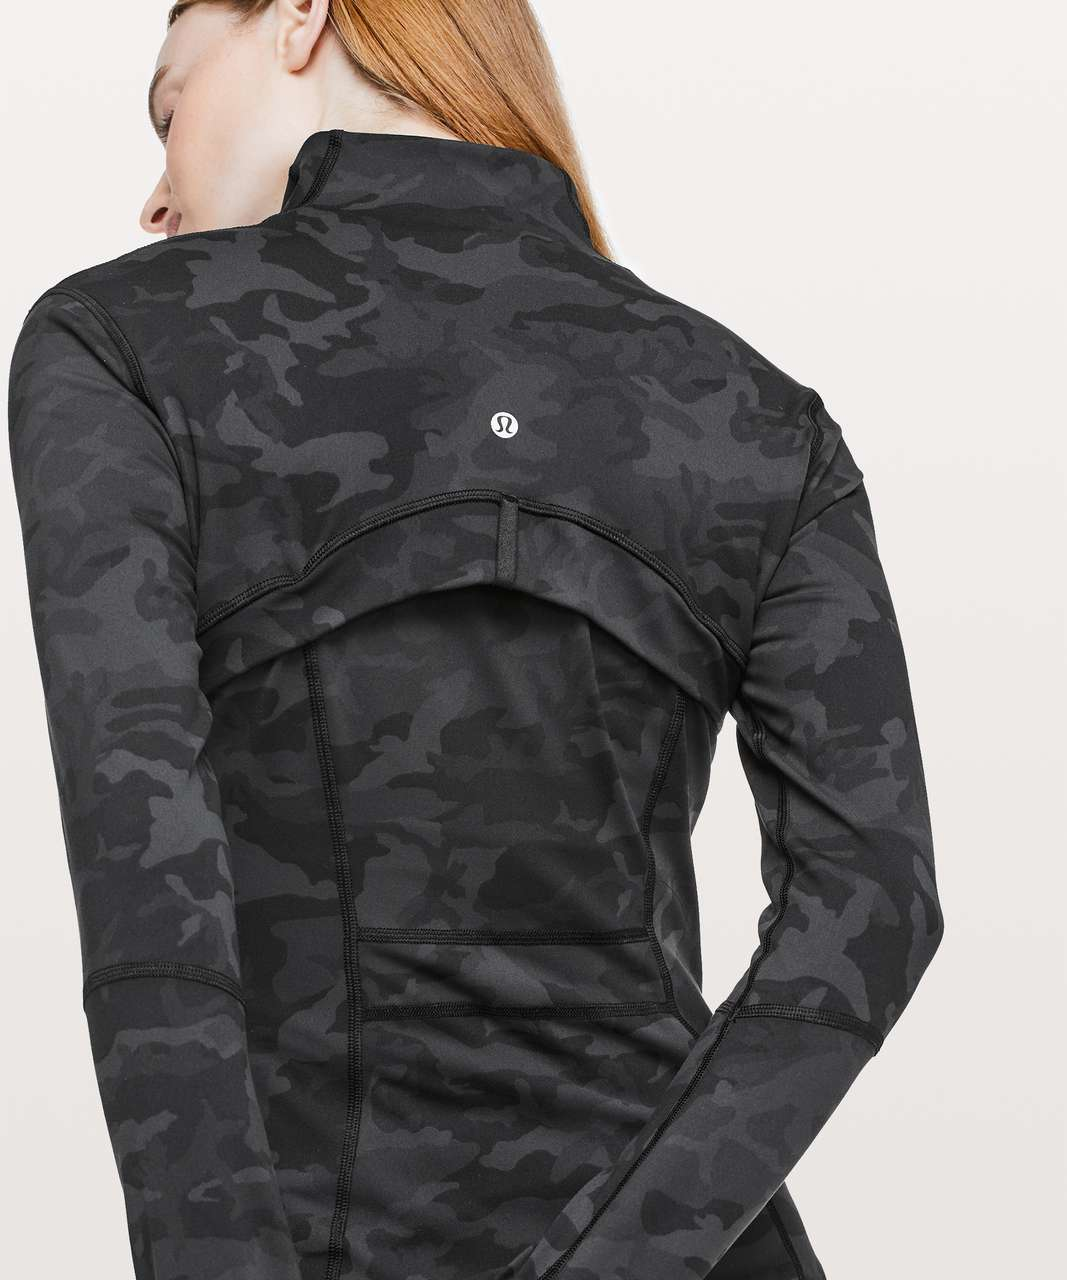 Lululemon Define Jacket - Incognito Camo Multi Grey